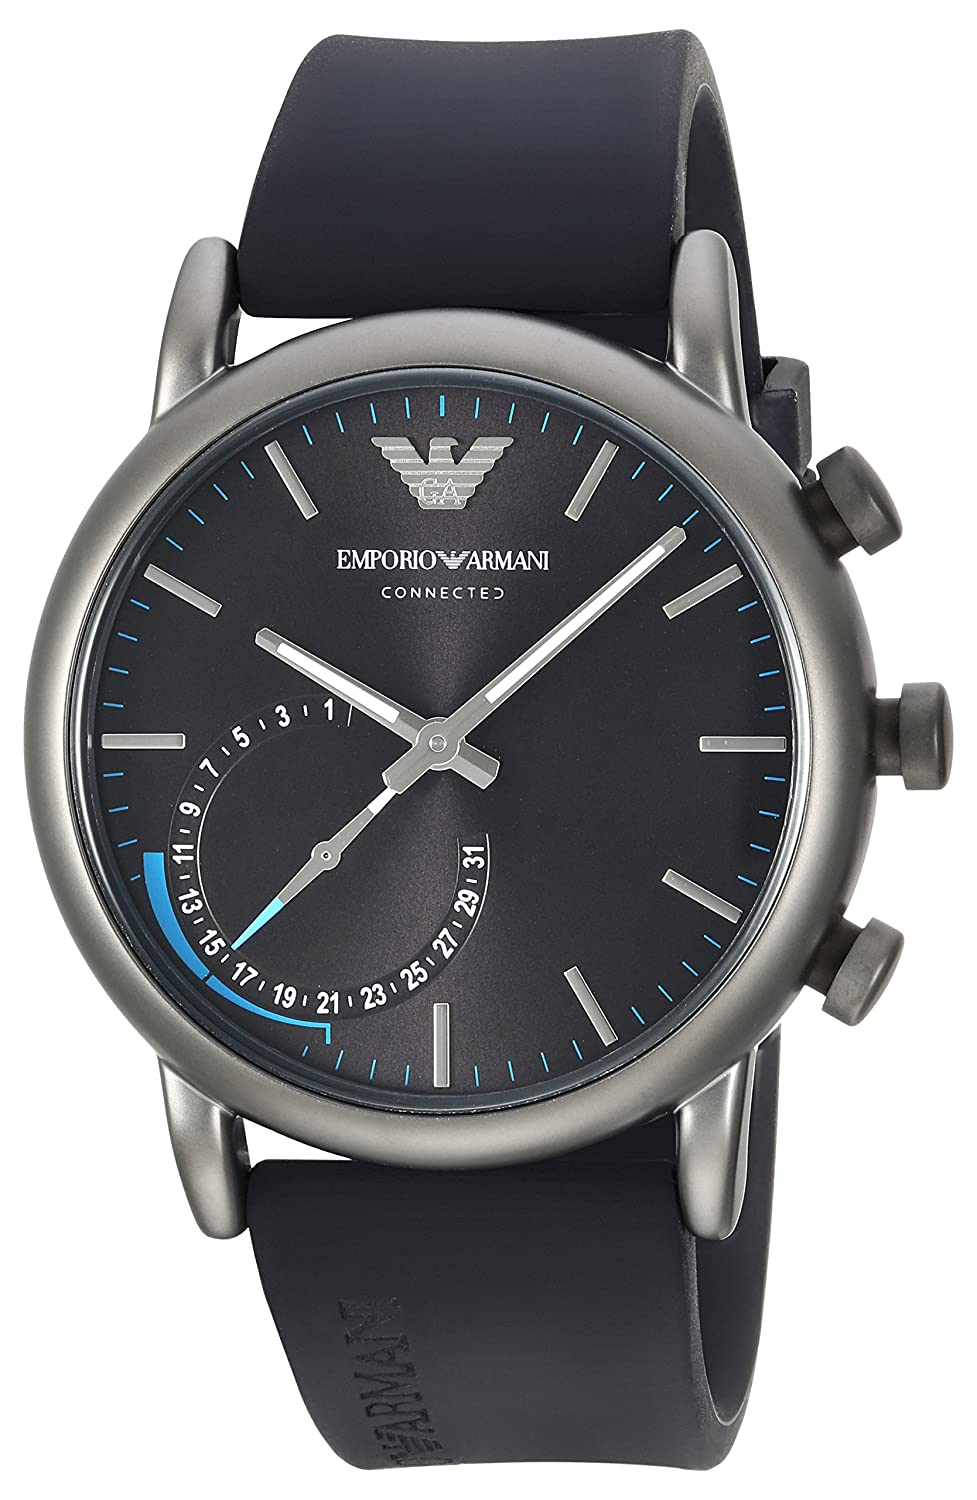 Emporio Armani - ART3009 ART3009, EA Connected: Amazon.es: Relojes